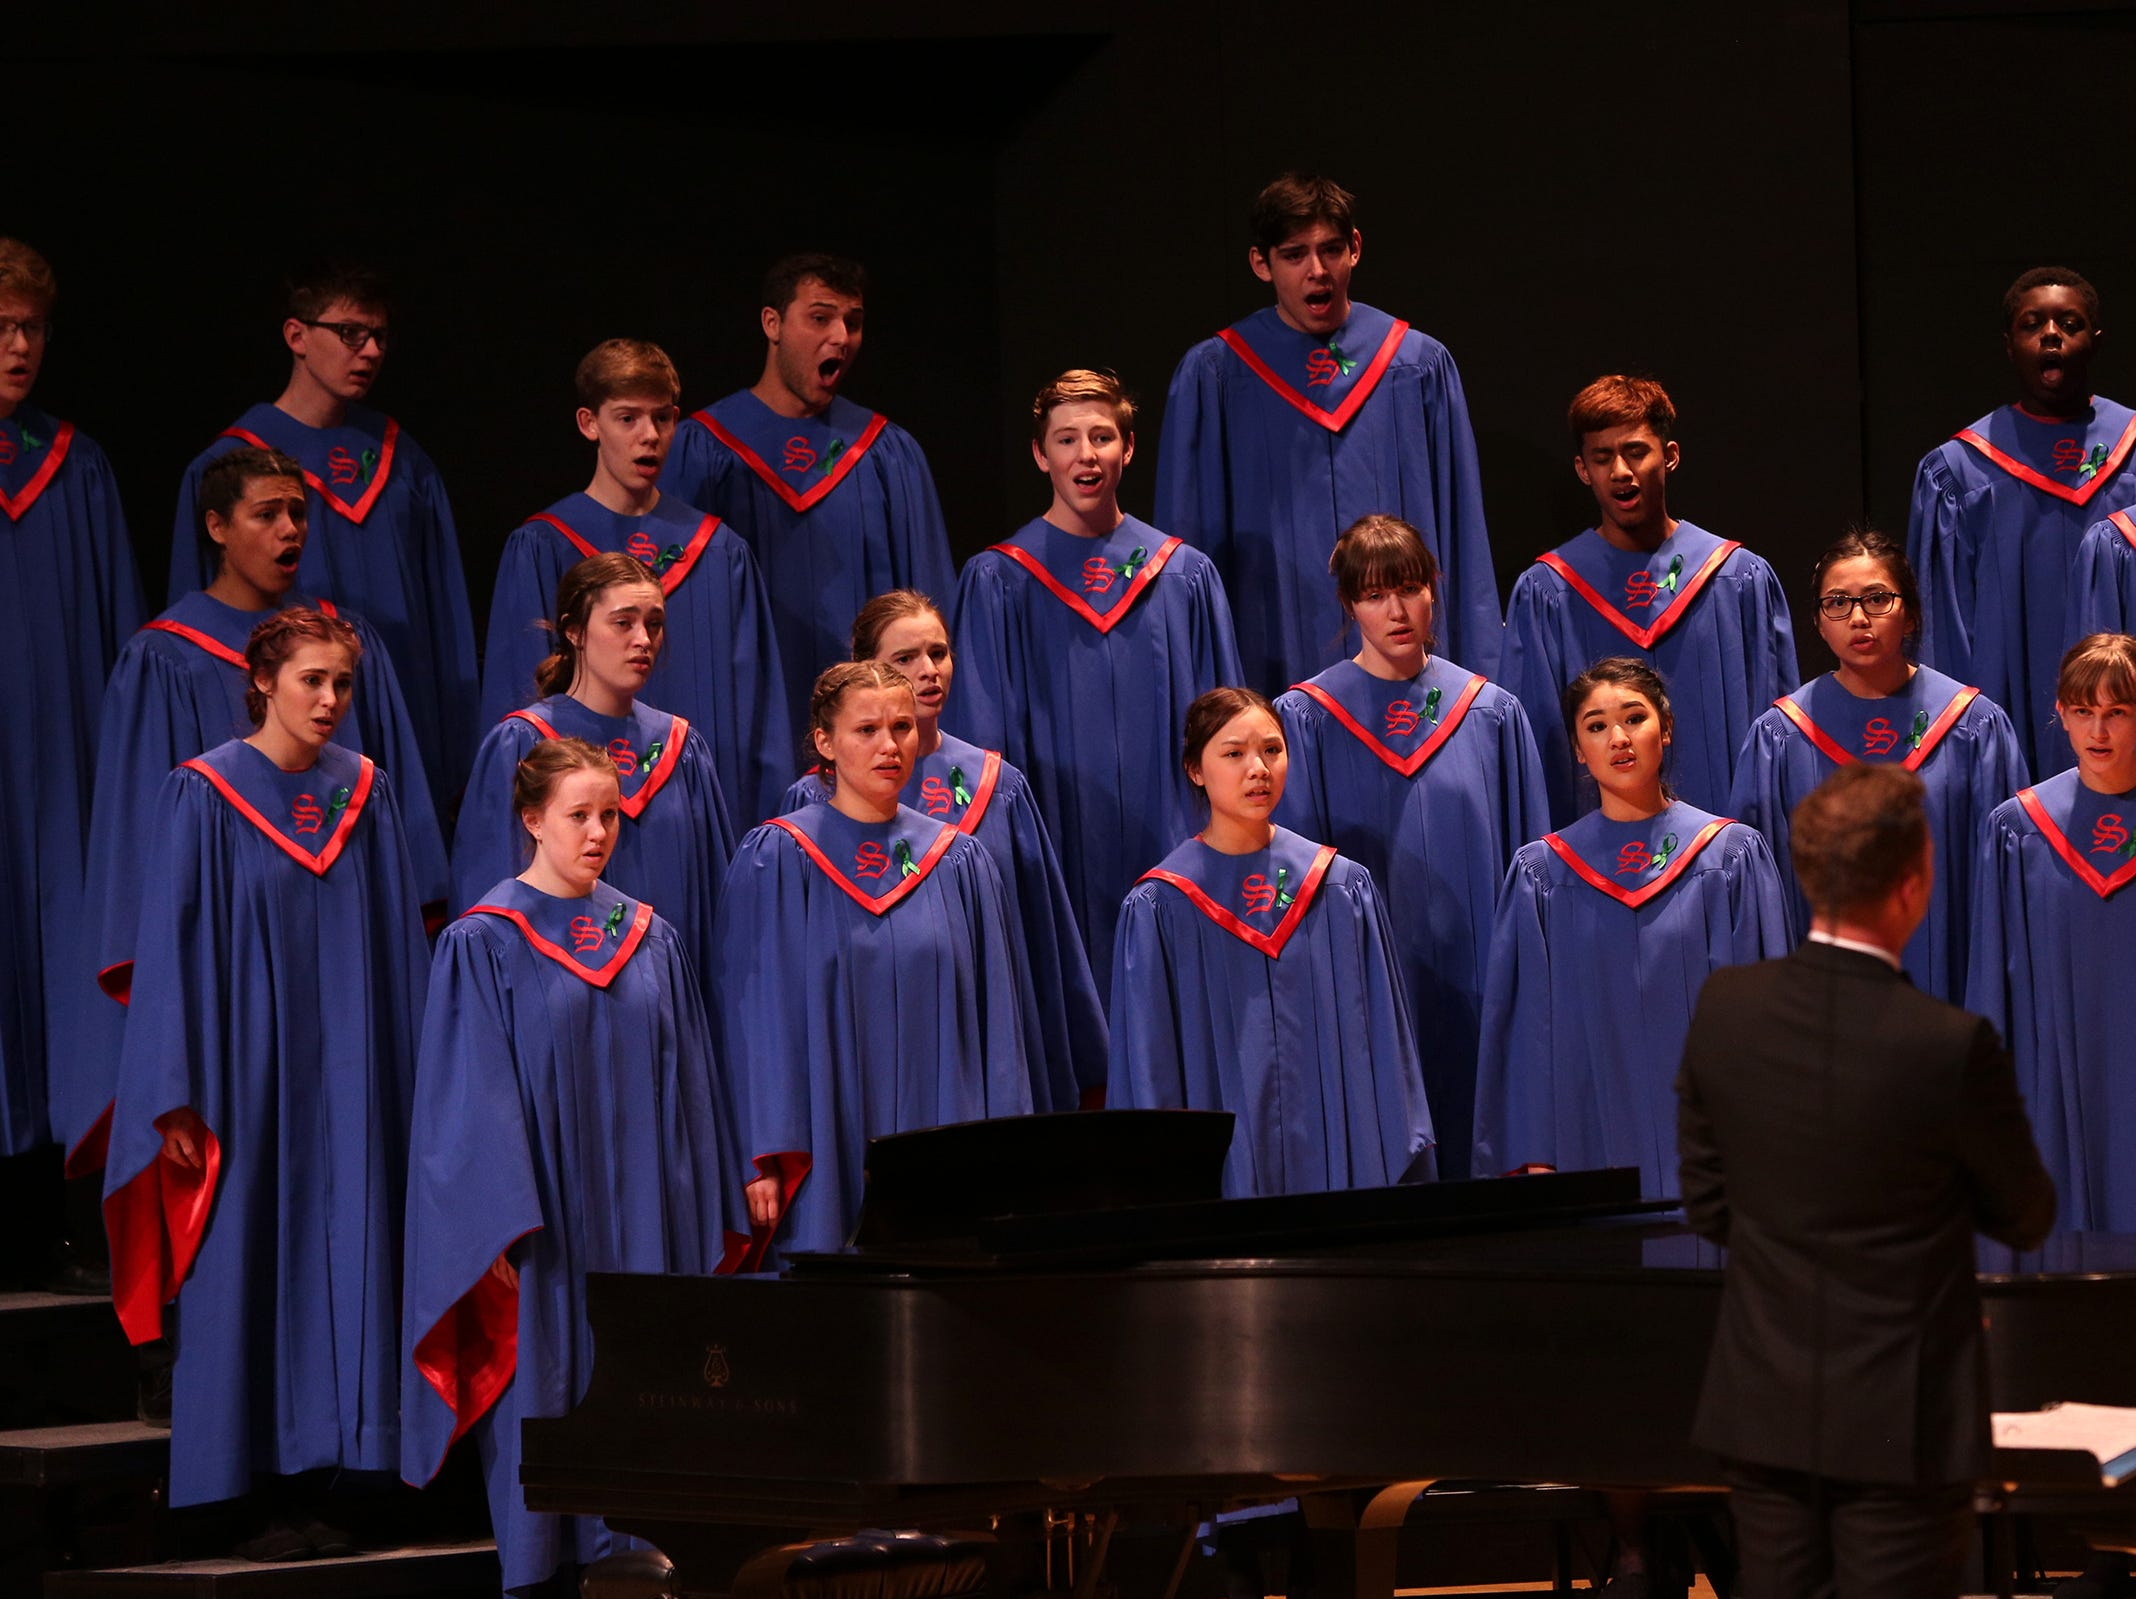 South Salem's choir, under the direction of William McLean, performs at the OSAA Choir State Championships at Oregon State University in Corvallis on May 1, 2019.